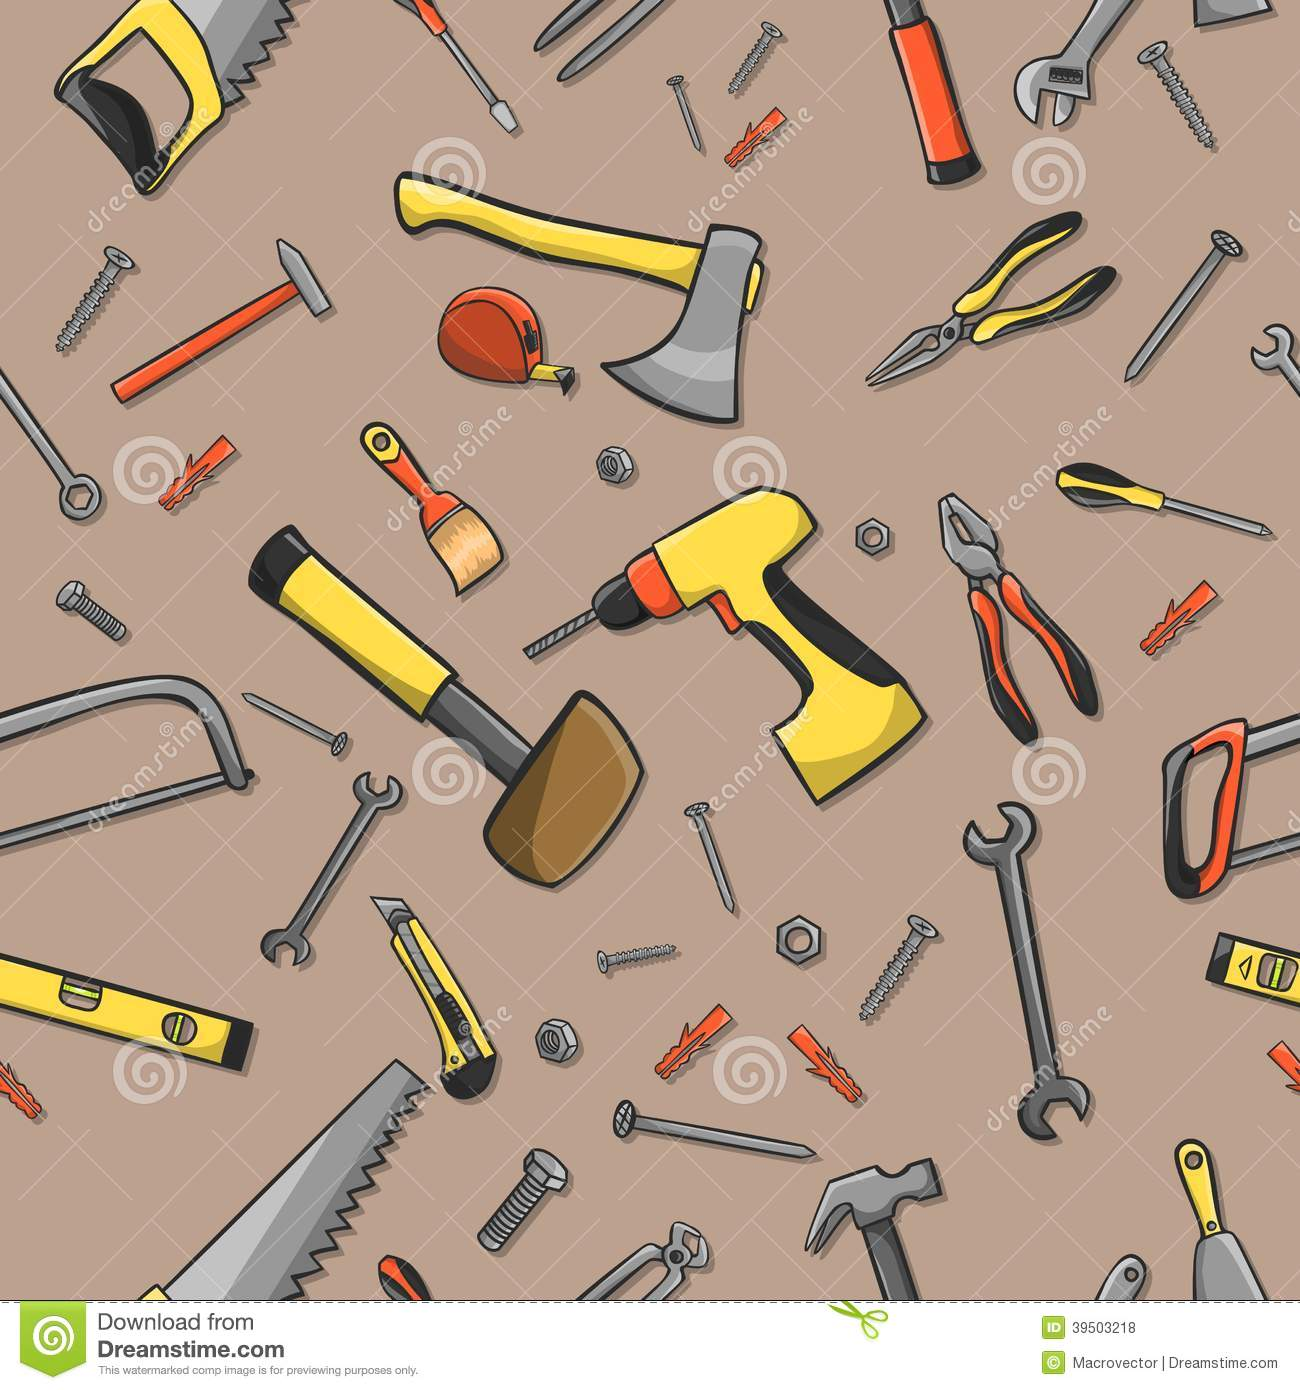 Carpenter tools seamless pattern